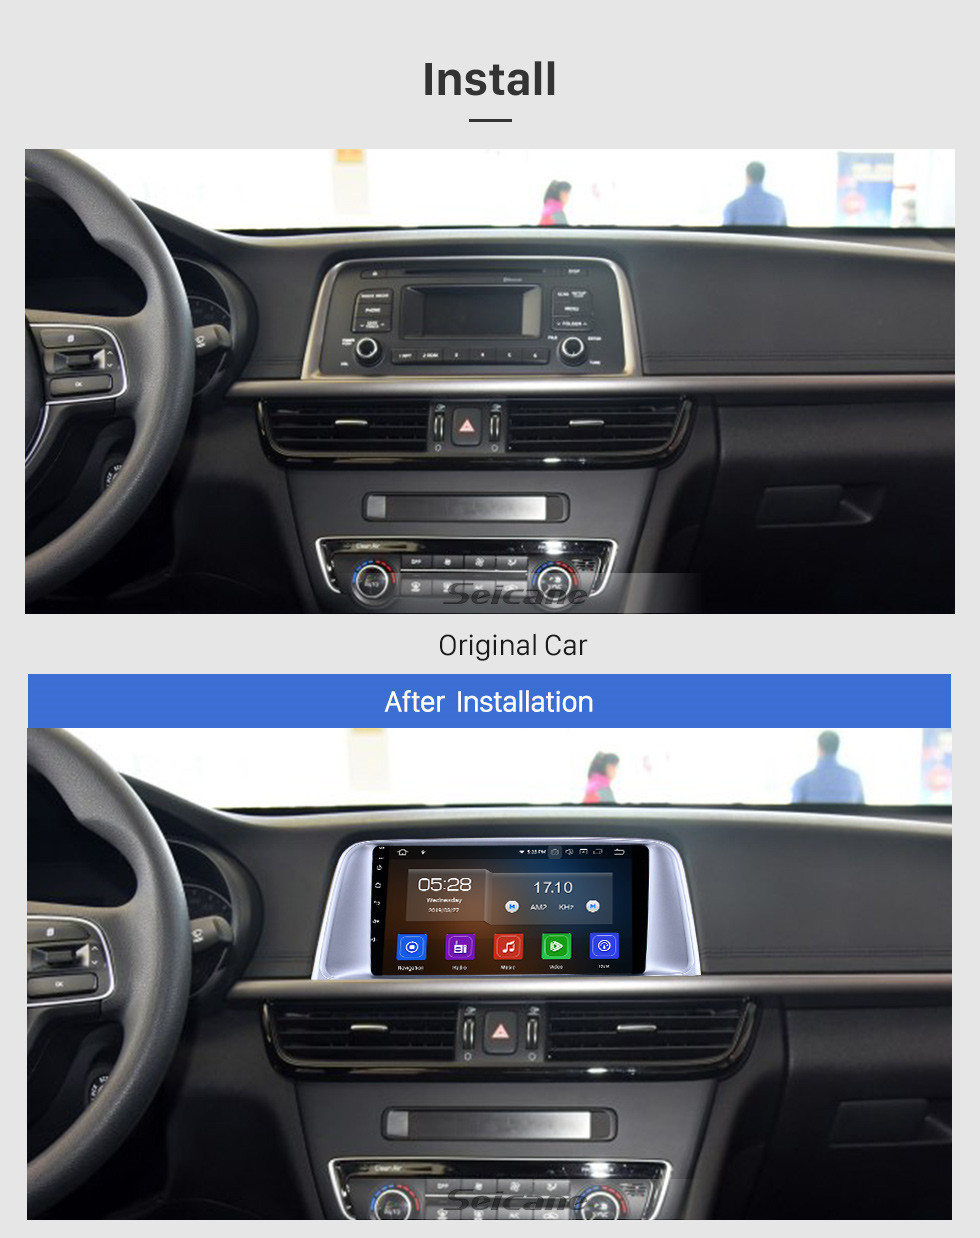 Seicane Android 10.0 9 inch GPS Navigation Radio for 2015 2016 2017 Kia K5 with HD Touchscreen Carplay Bluetooth WIFI USB AUX support Mirror Link OBD2 SWC